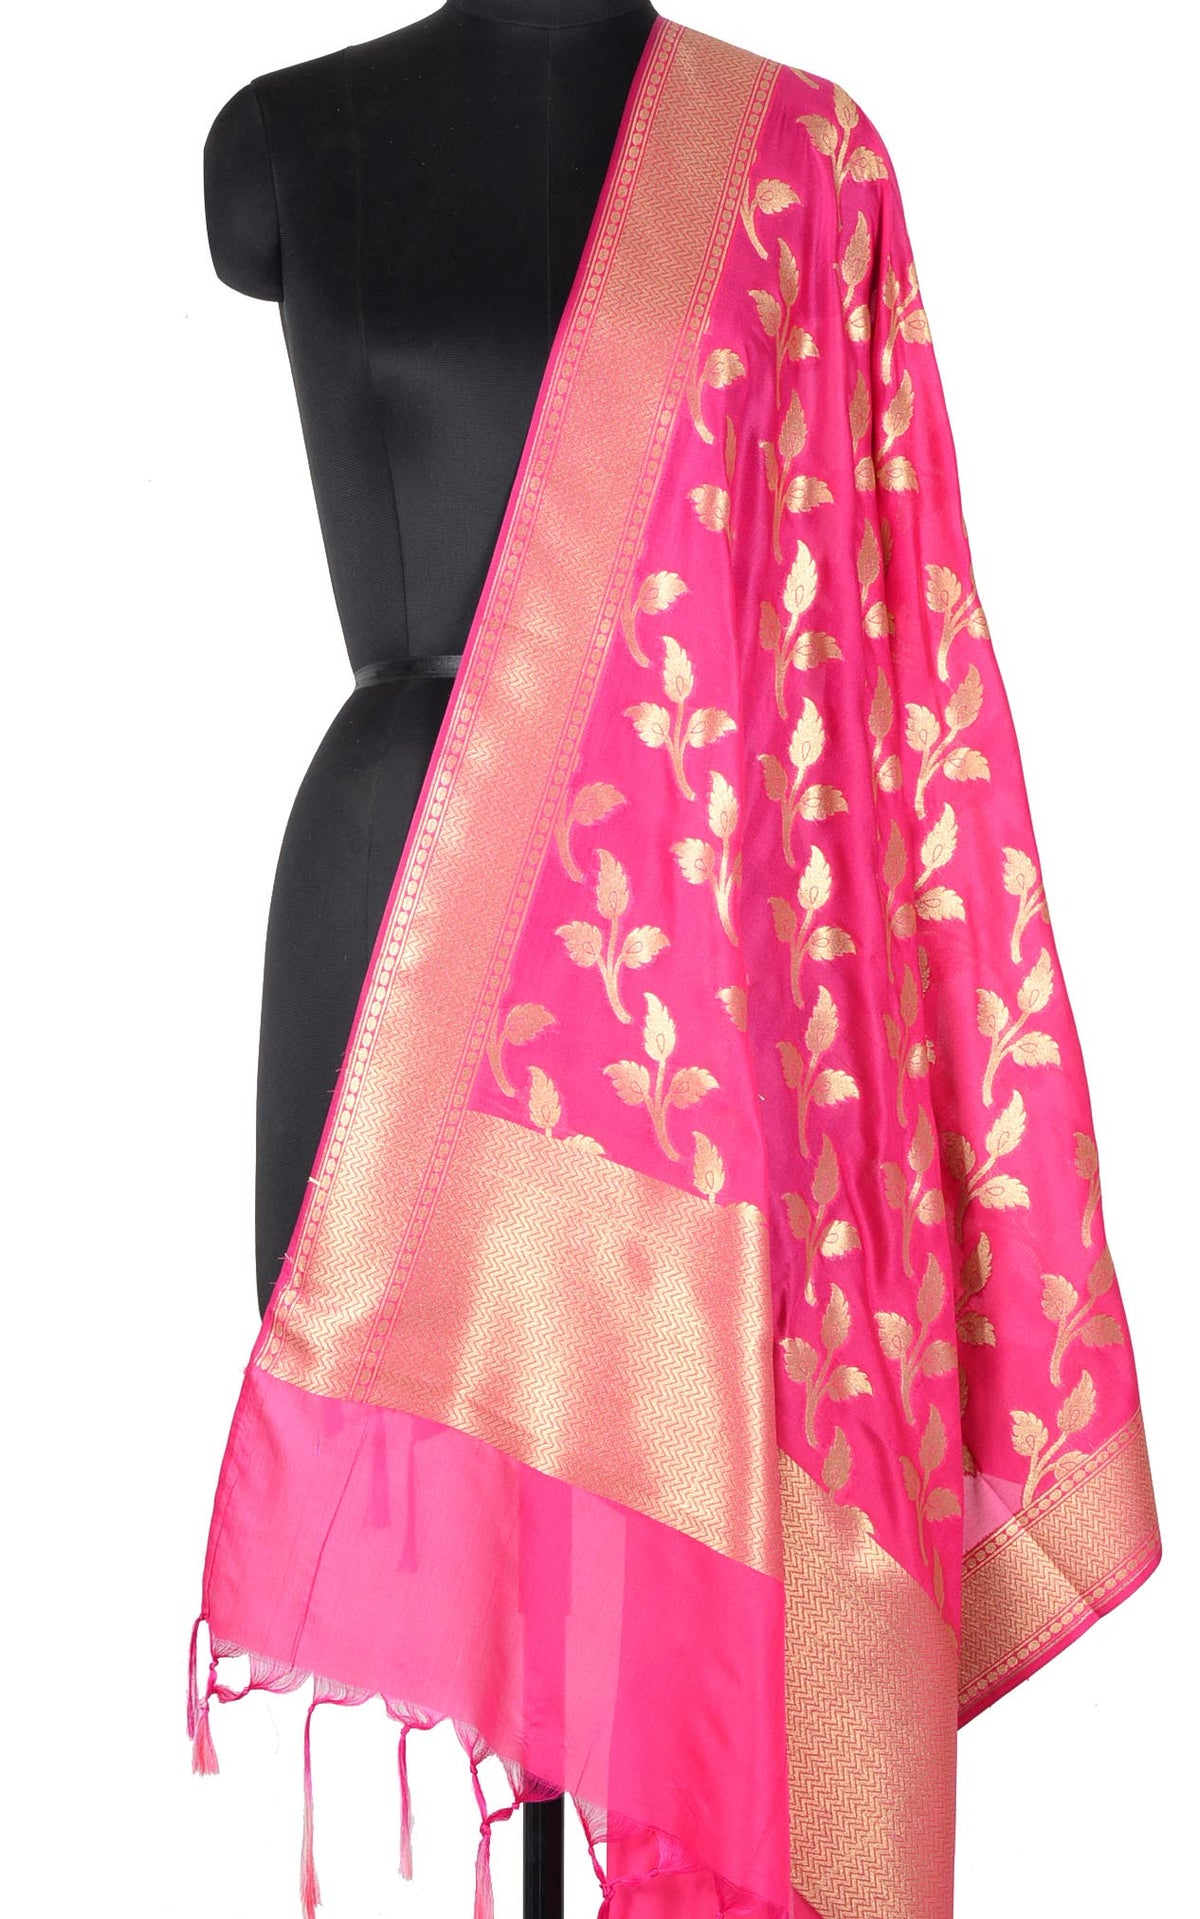 Pink Banarasi dupatta with leaf motifs (1) Main